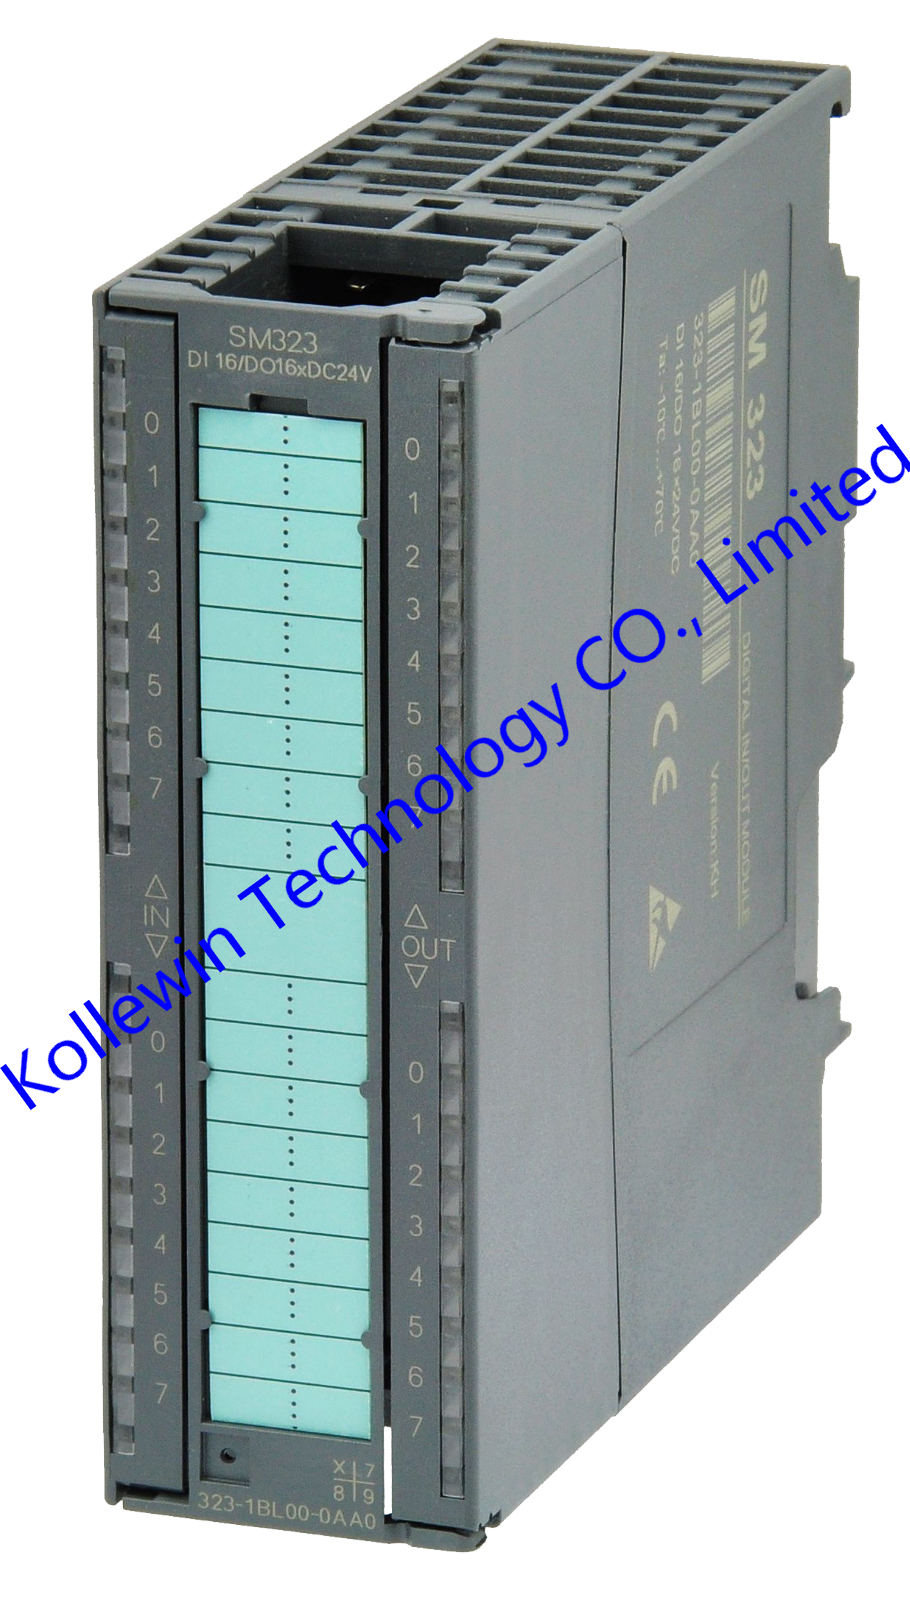 323 1BL00 0AA0 profibus connector 6es7323 1bl00 0aa0 6es7 322 1bl00 0aa0 wiring diagram at n-0.co